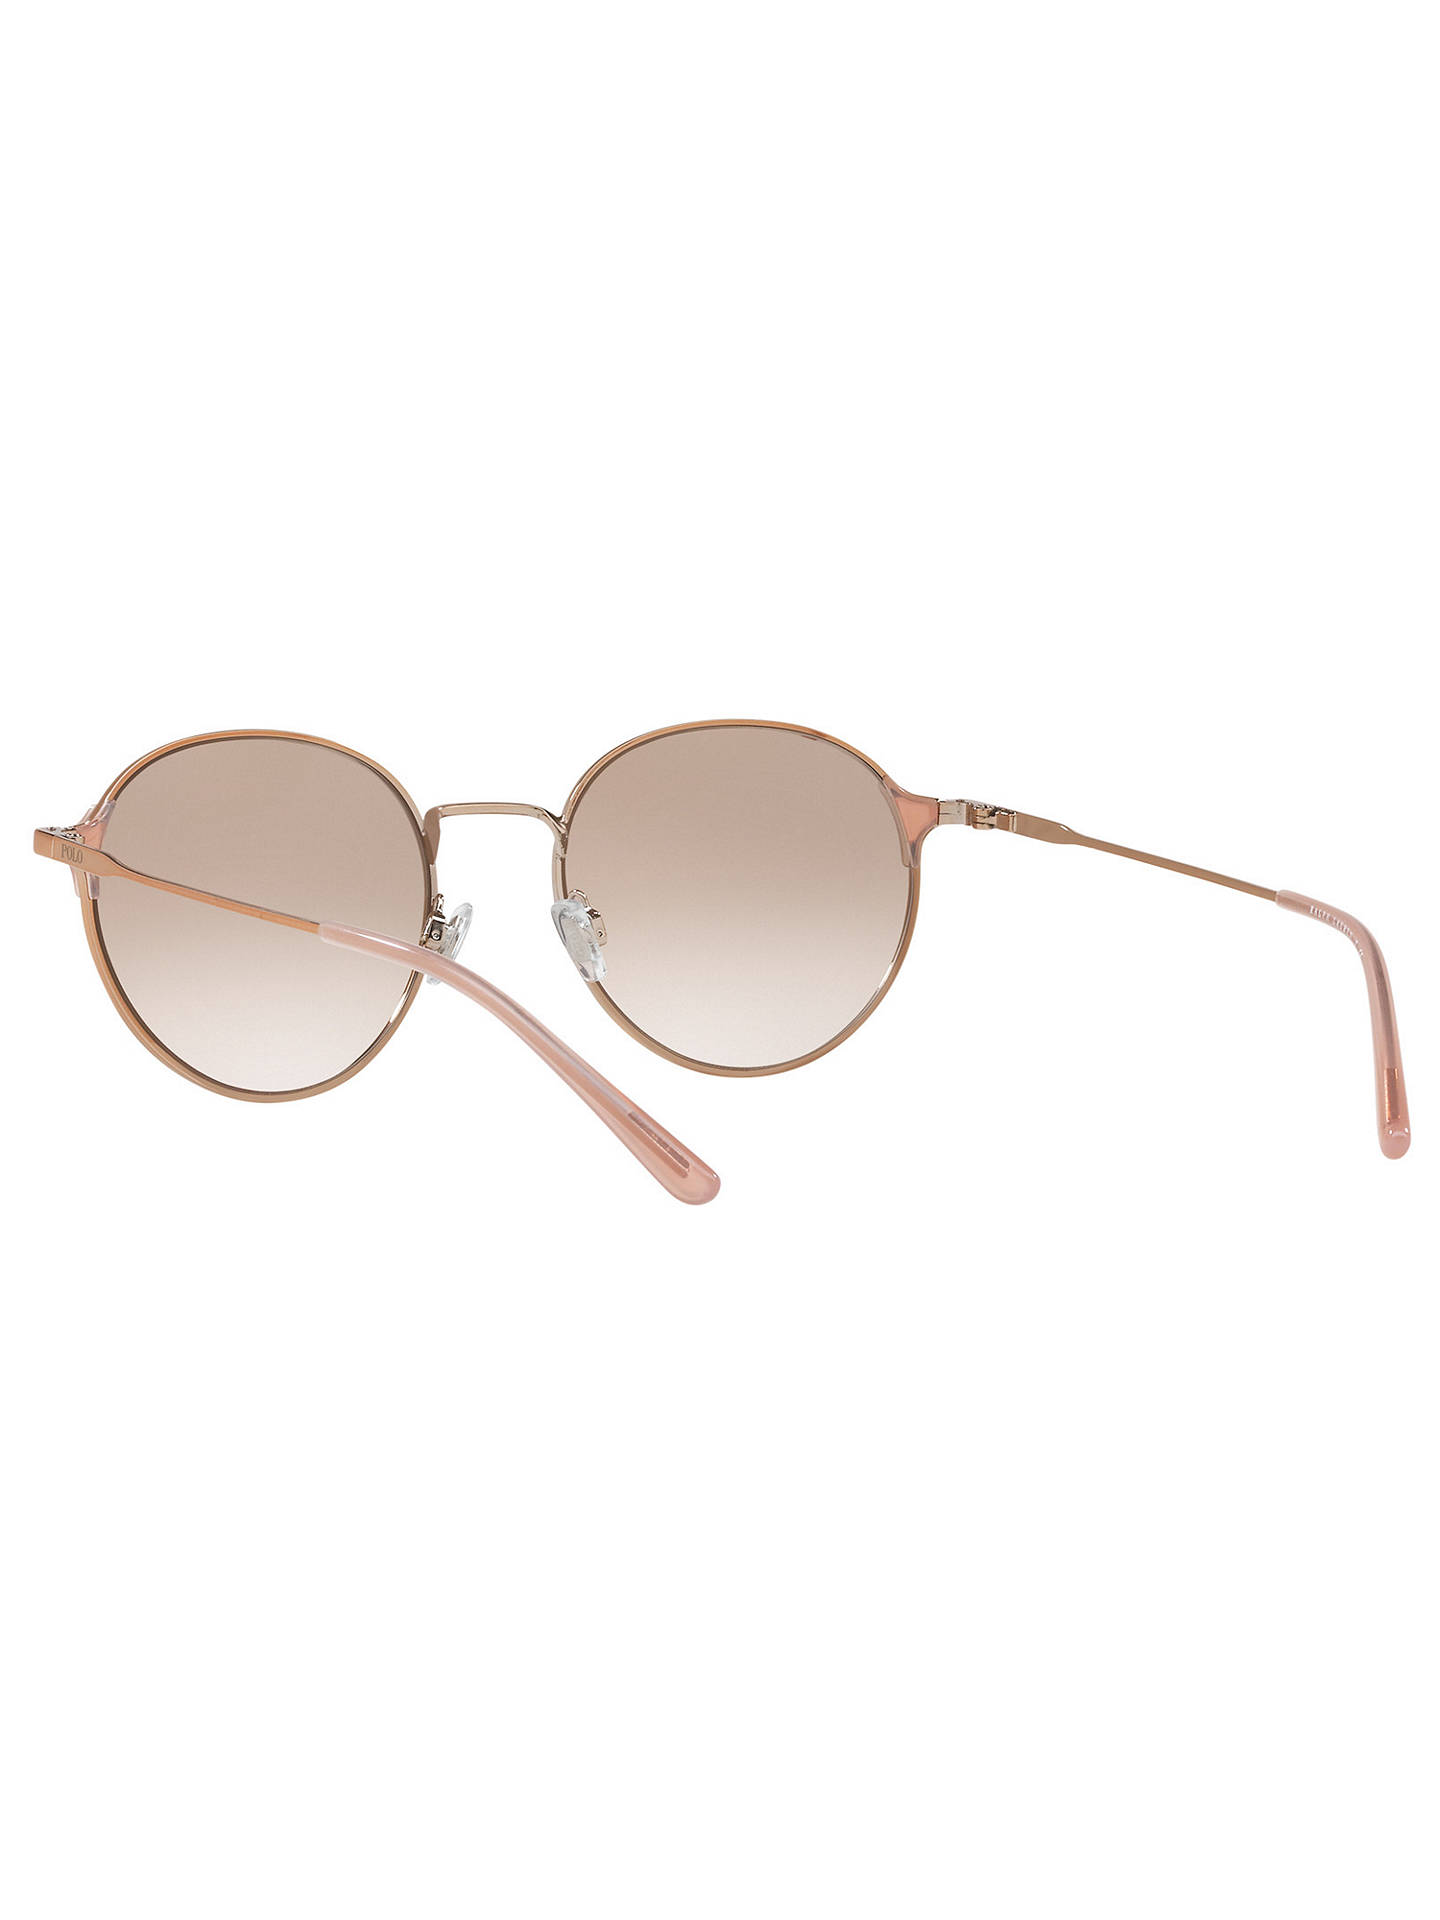 Buy Polo Ralph Lauren PH3109 Oval Sunglasses, Rose Gold/Mirror Lilac Online at johnlewis.com